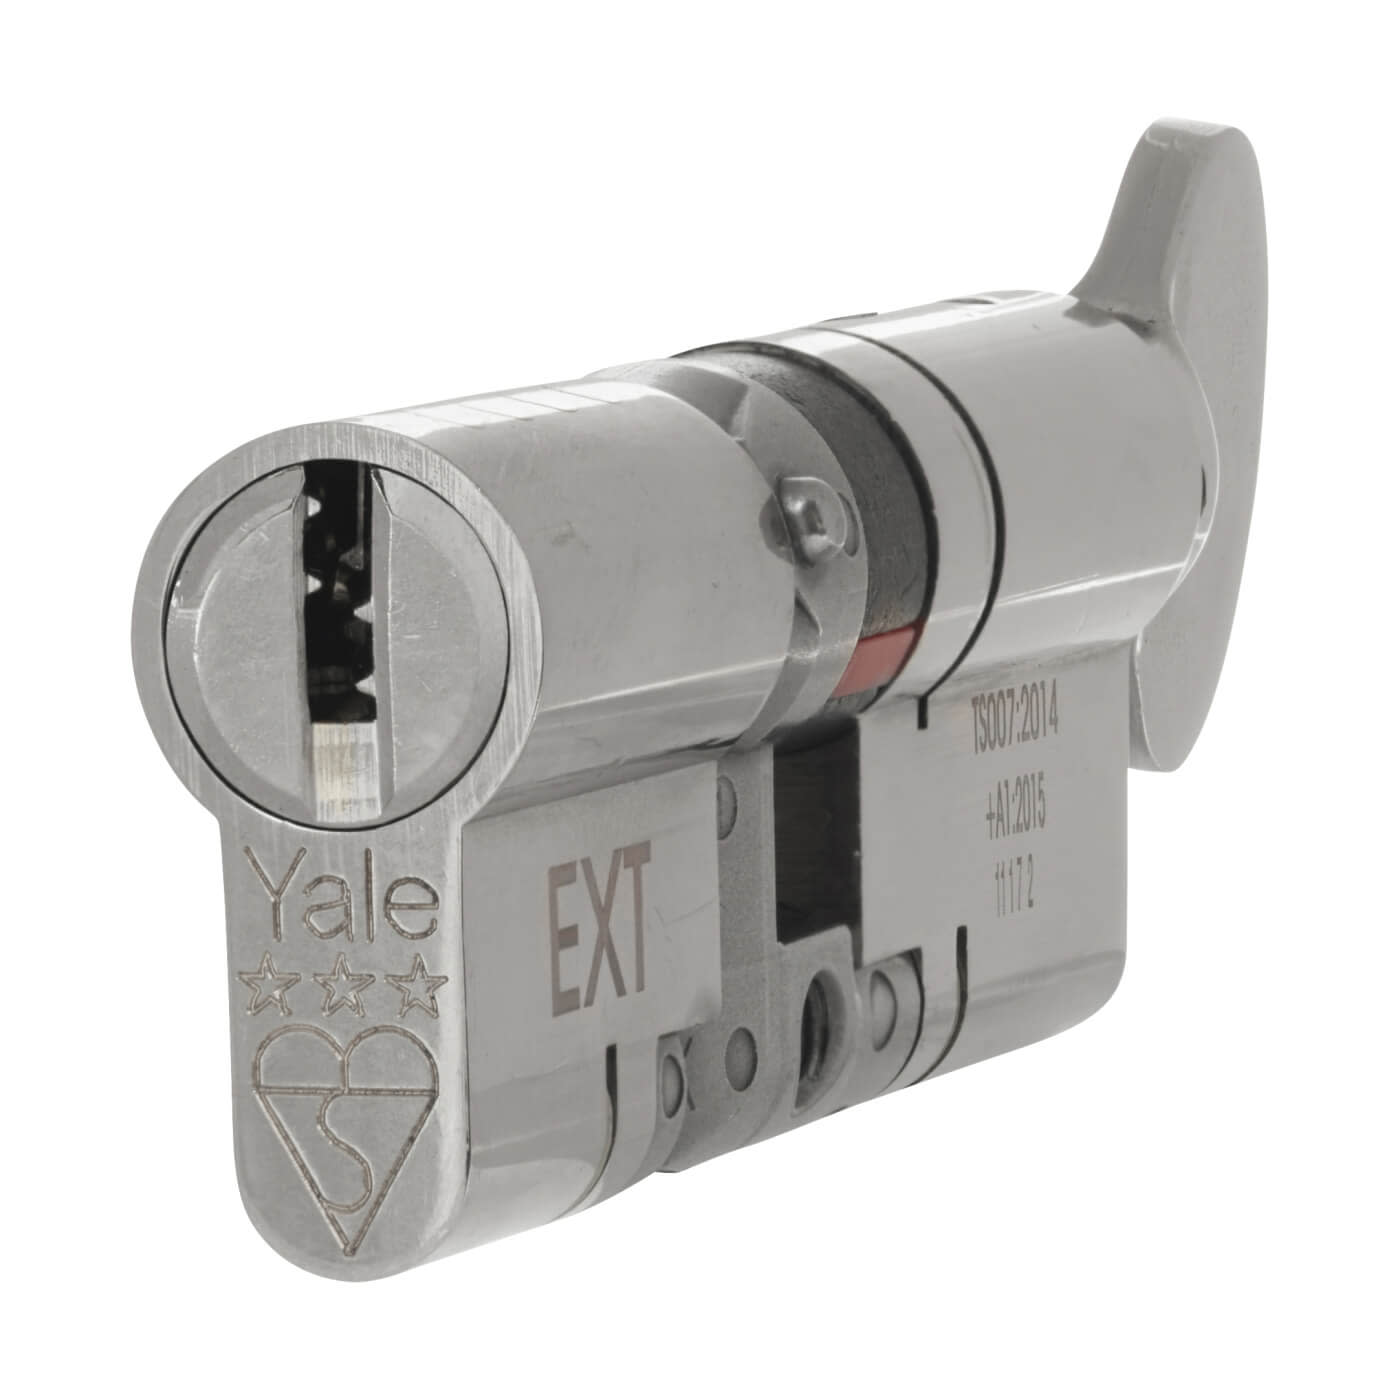 Yale® 3 Star Anti-Snap Platinum Euro Thumbturn Cylinder - 80mm Length - 40[k]* + 40mm - Bright )